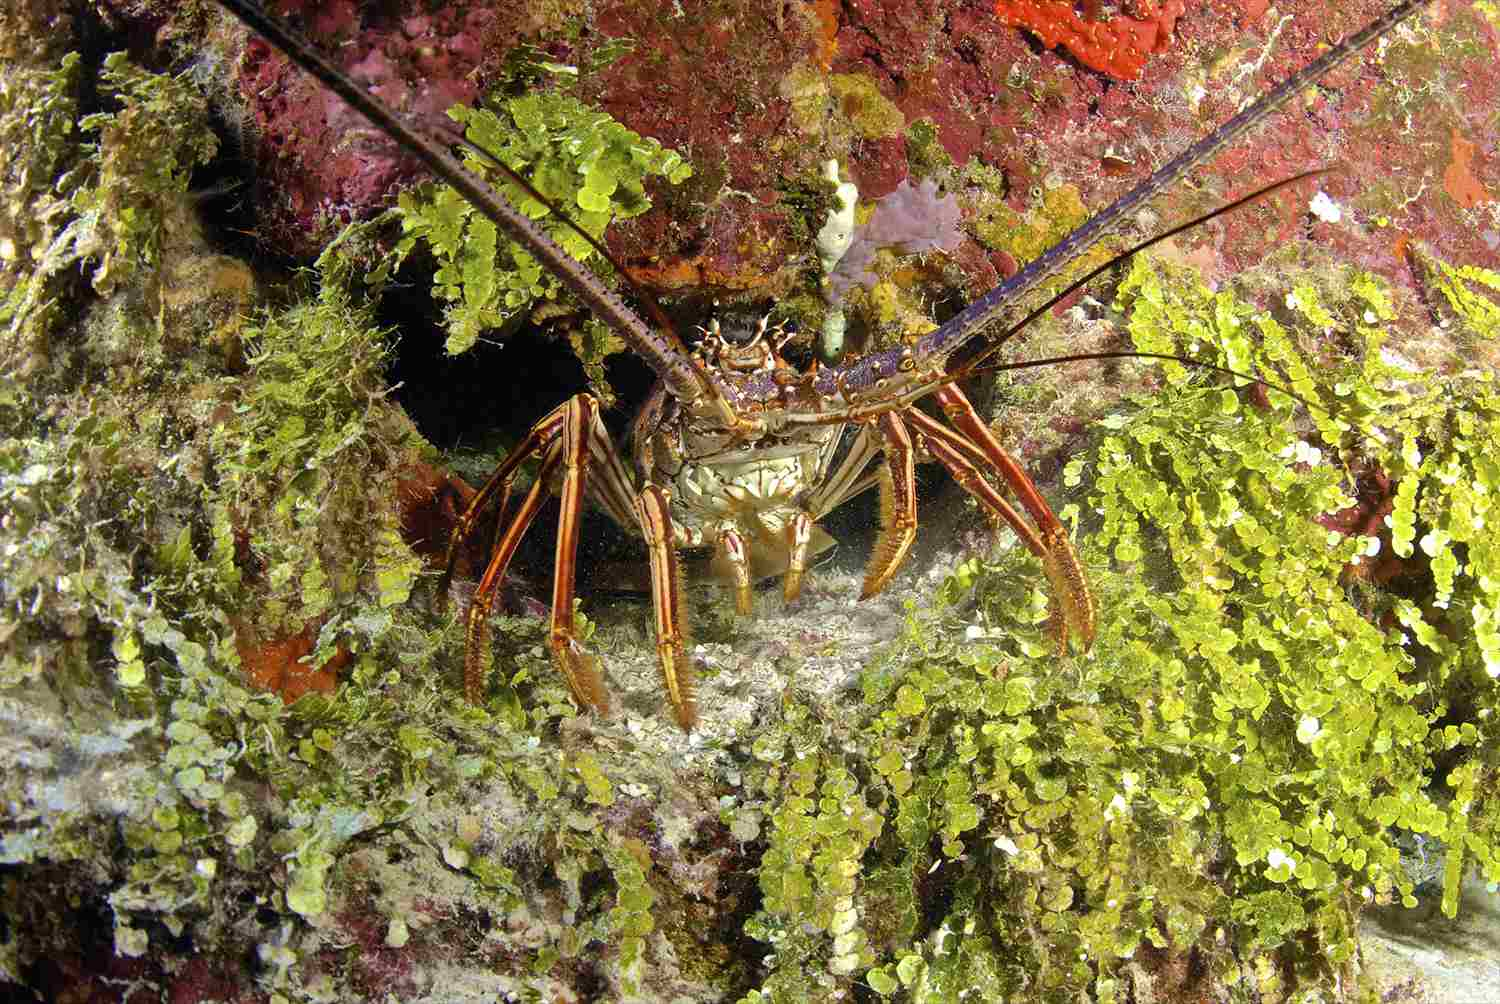 Spiny Lobster Hiding in the Reef